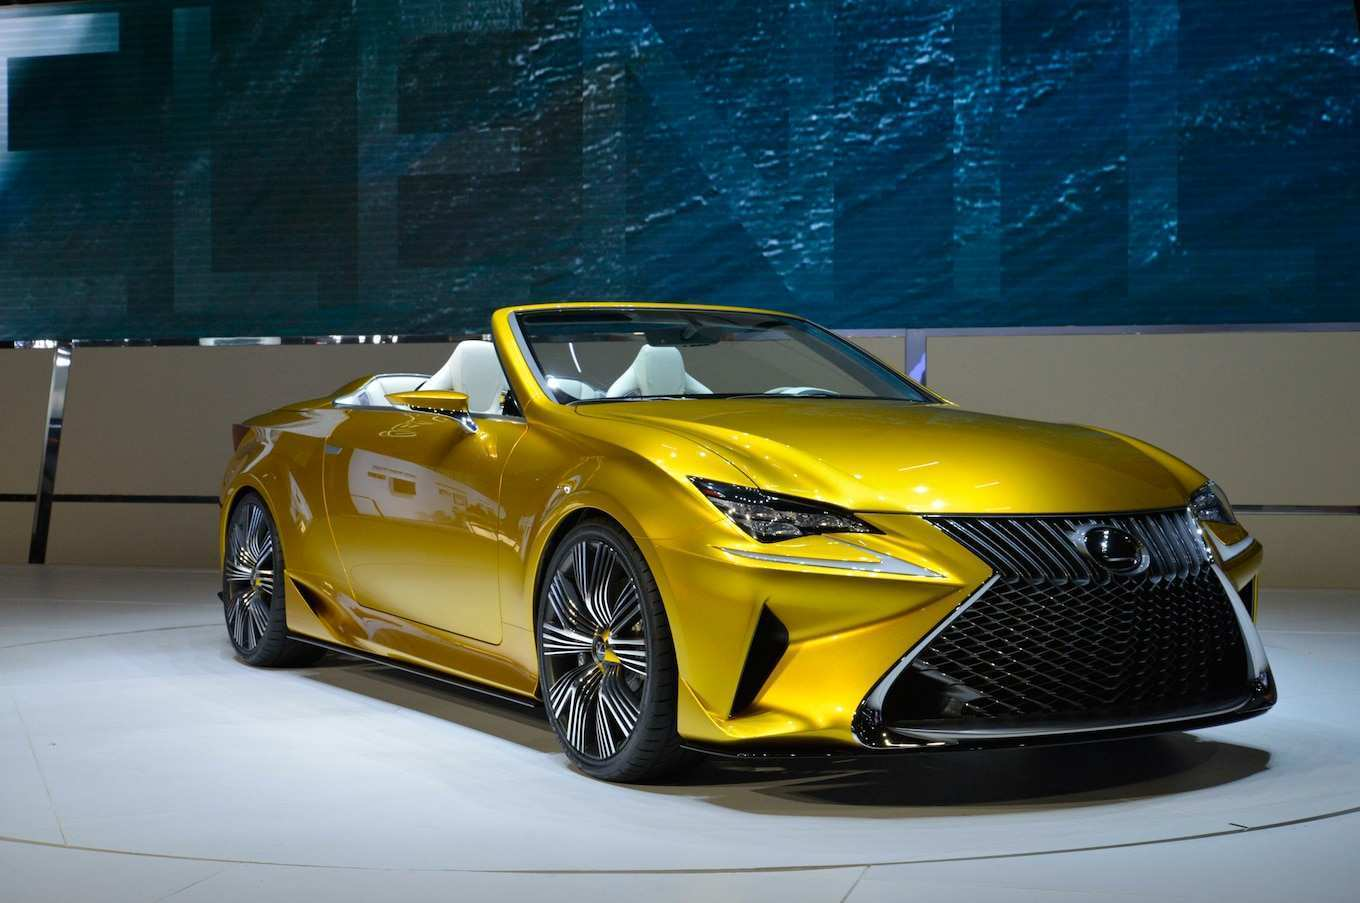 12 All New Lexus Convertible 2020 Pictures for Lexus Convertible 2020